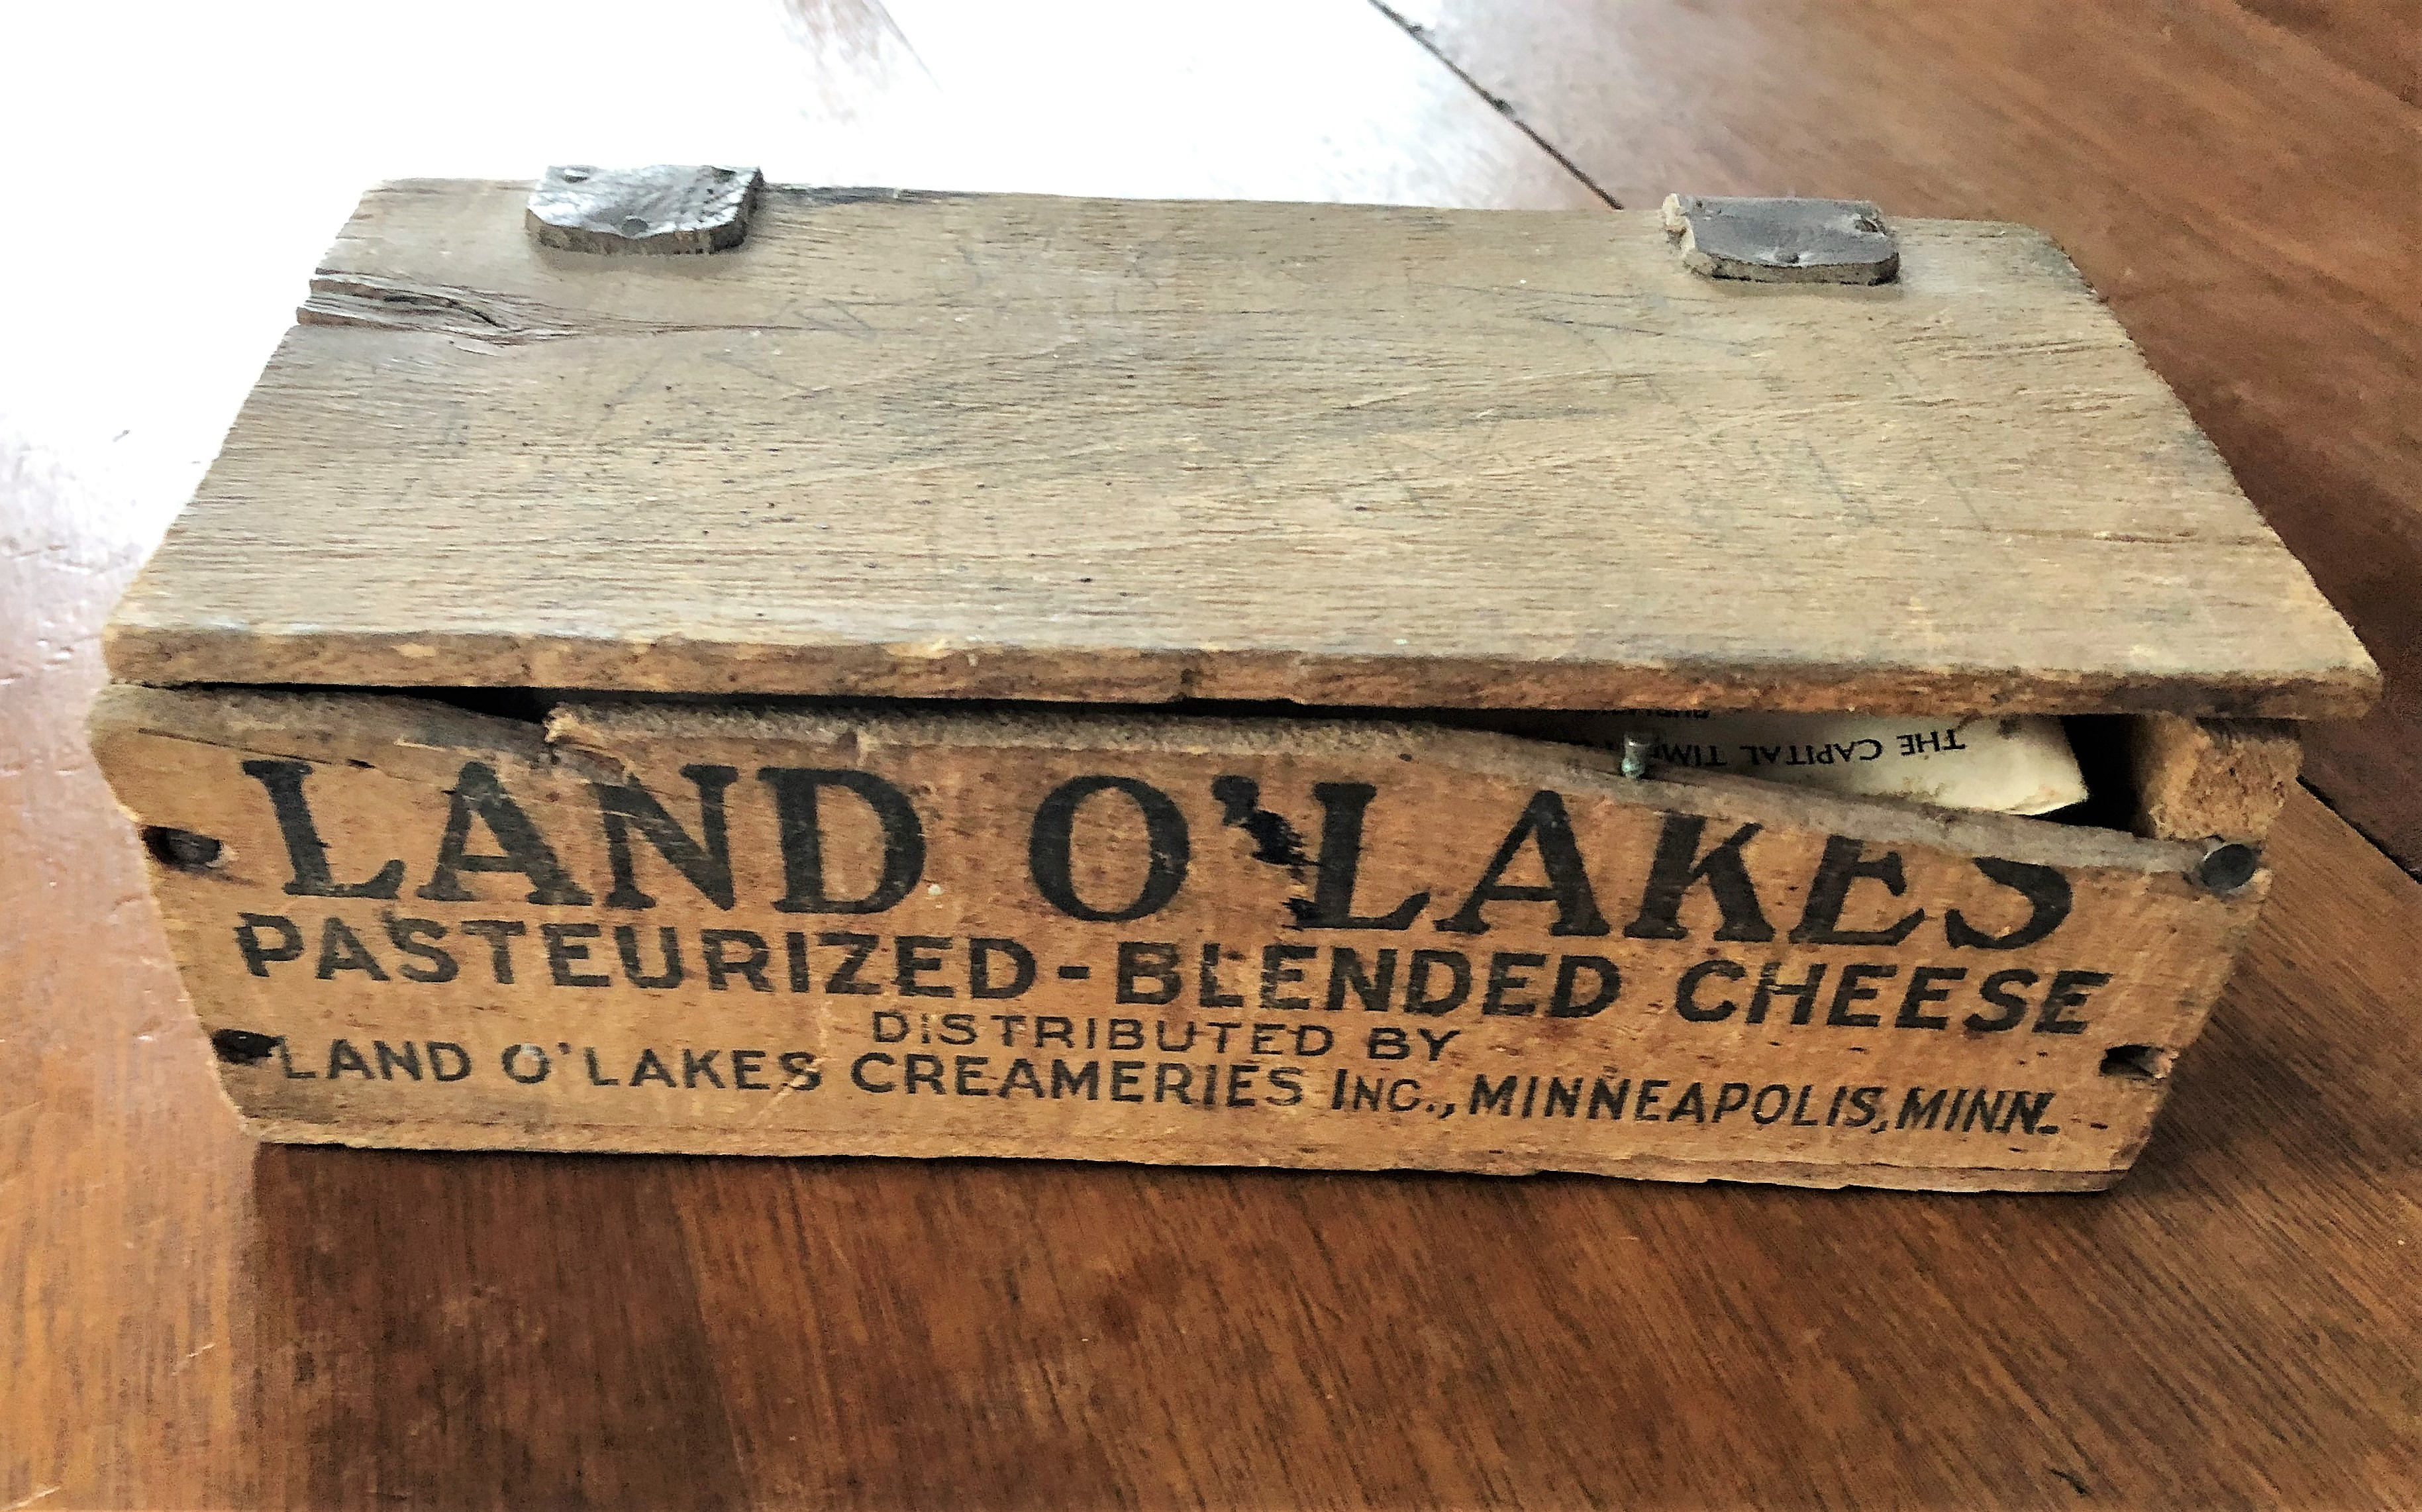 Many treasures were found in this old cheese box.